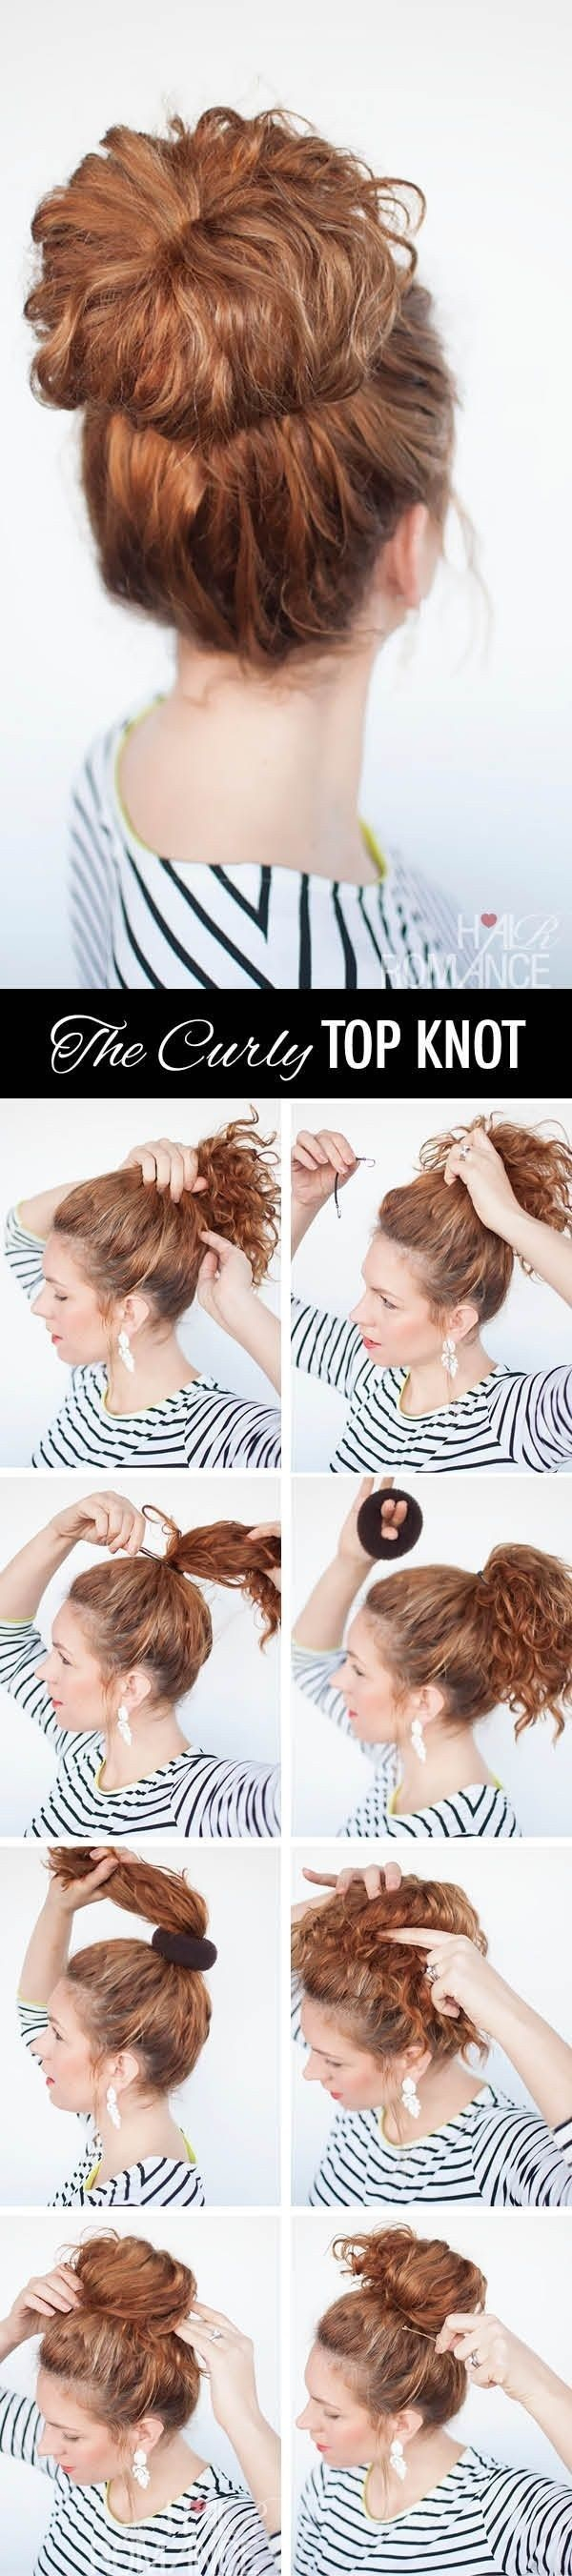 Simple Five Minute Hairstyles (17)